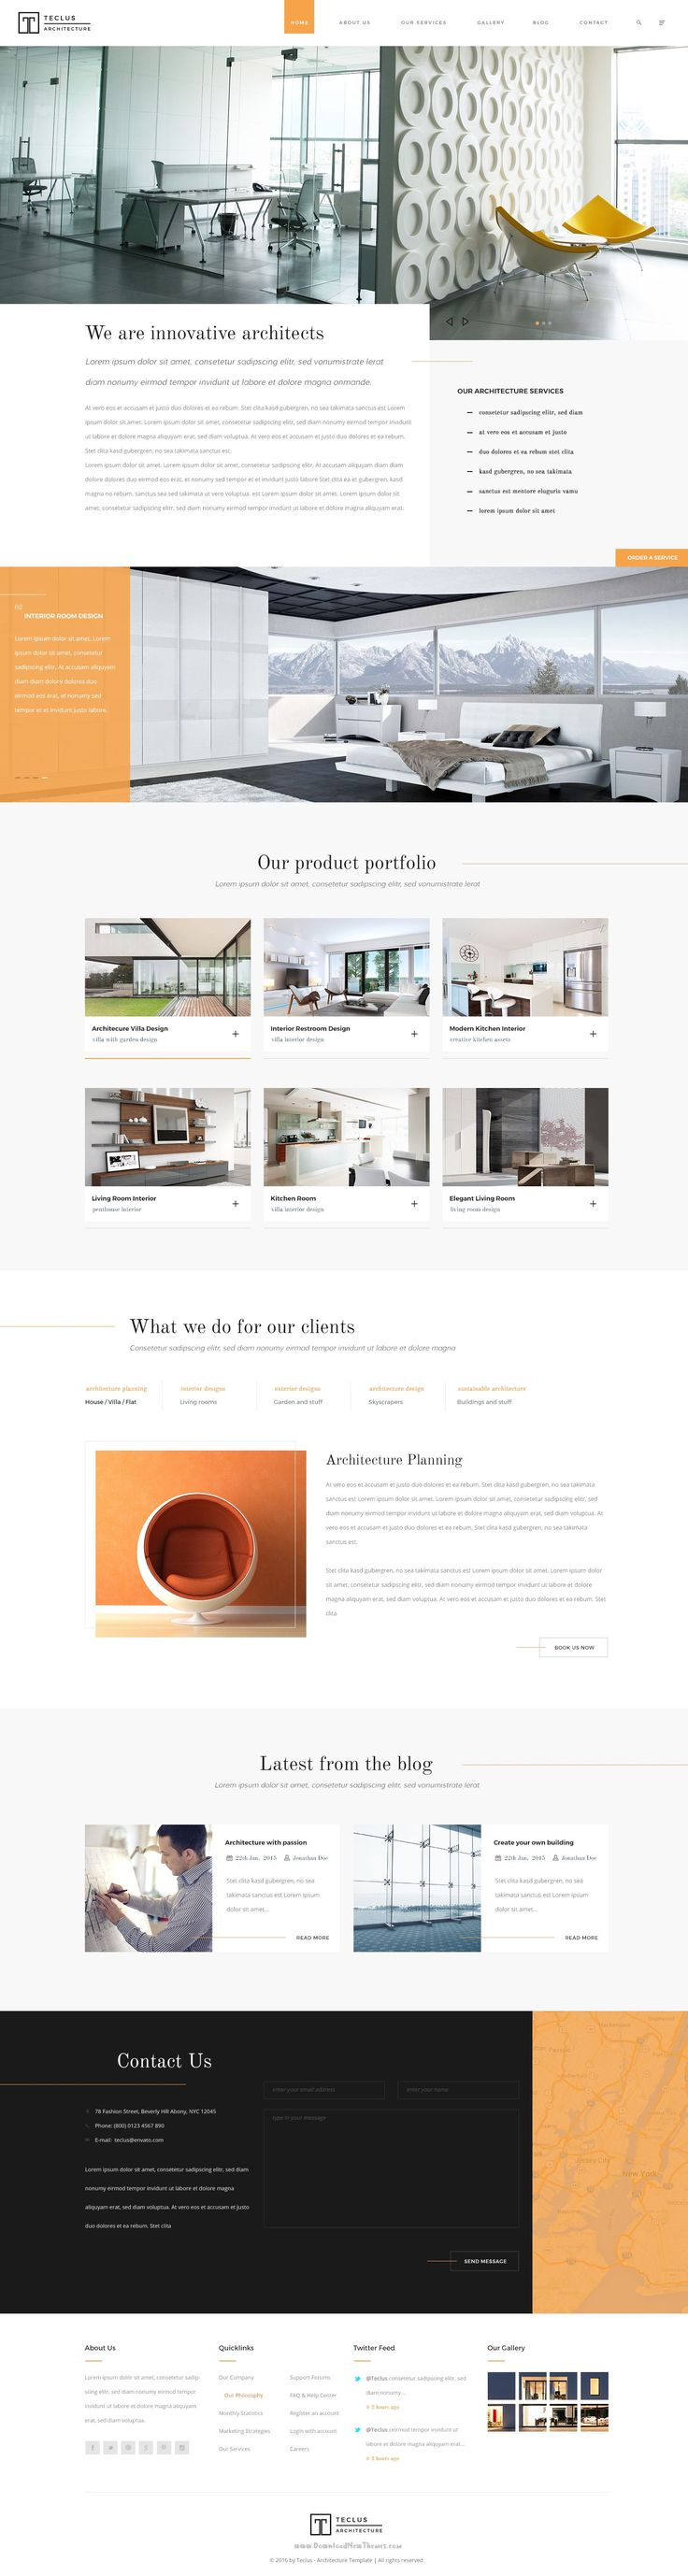 Teclus PSD template is made for architecture and interior design companies. It has purpose oriented design, responsive layout and special features like 3 different landing pages, blog layouts, galleries, services and pricing tables. #website #Photoshop #Template